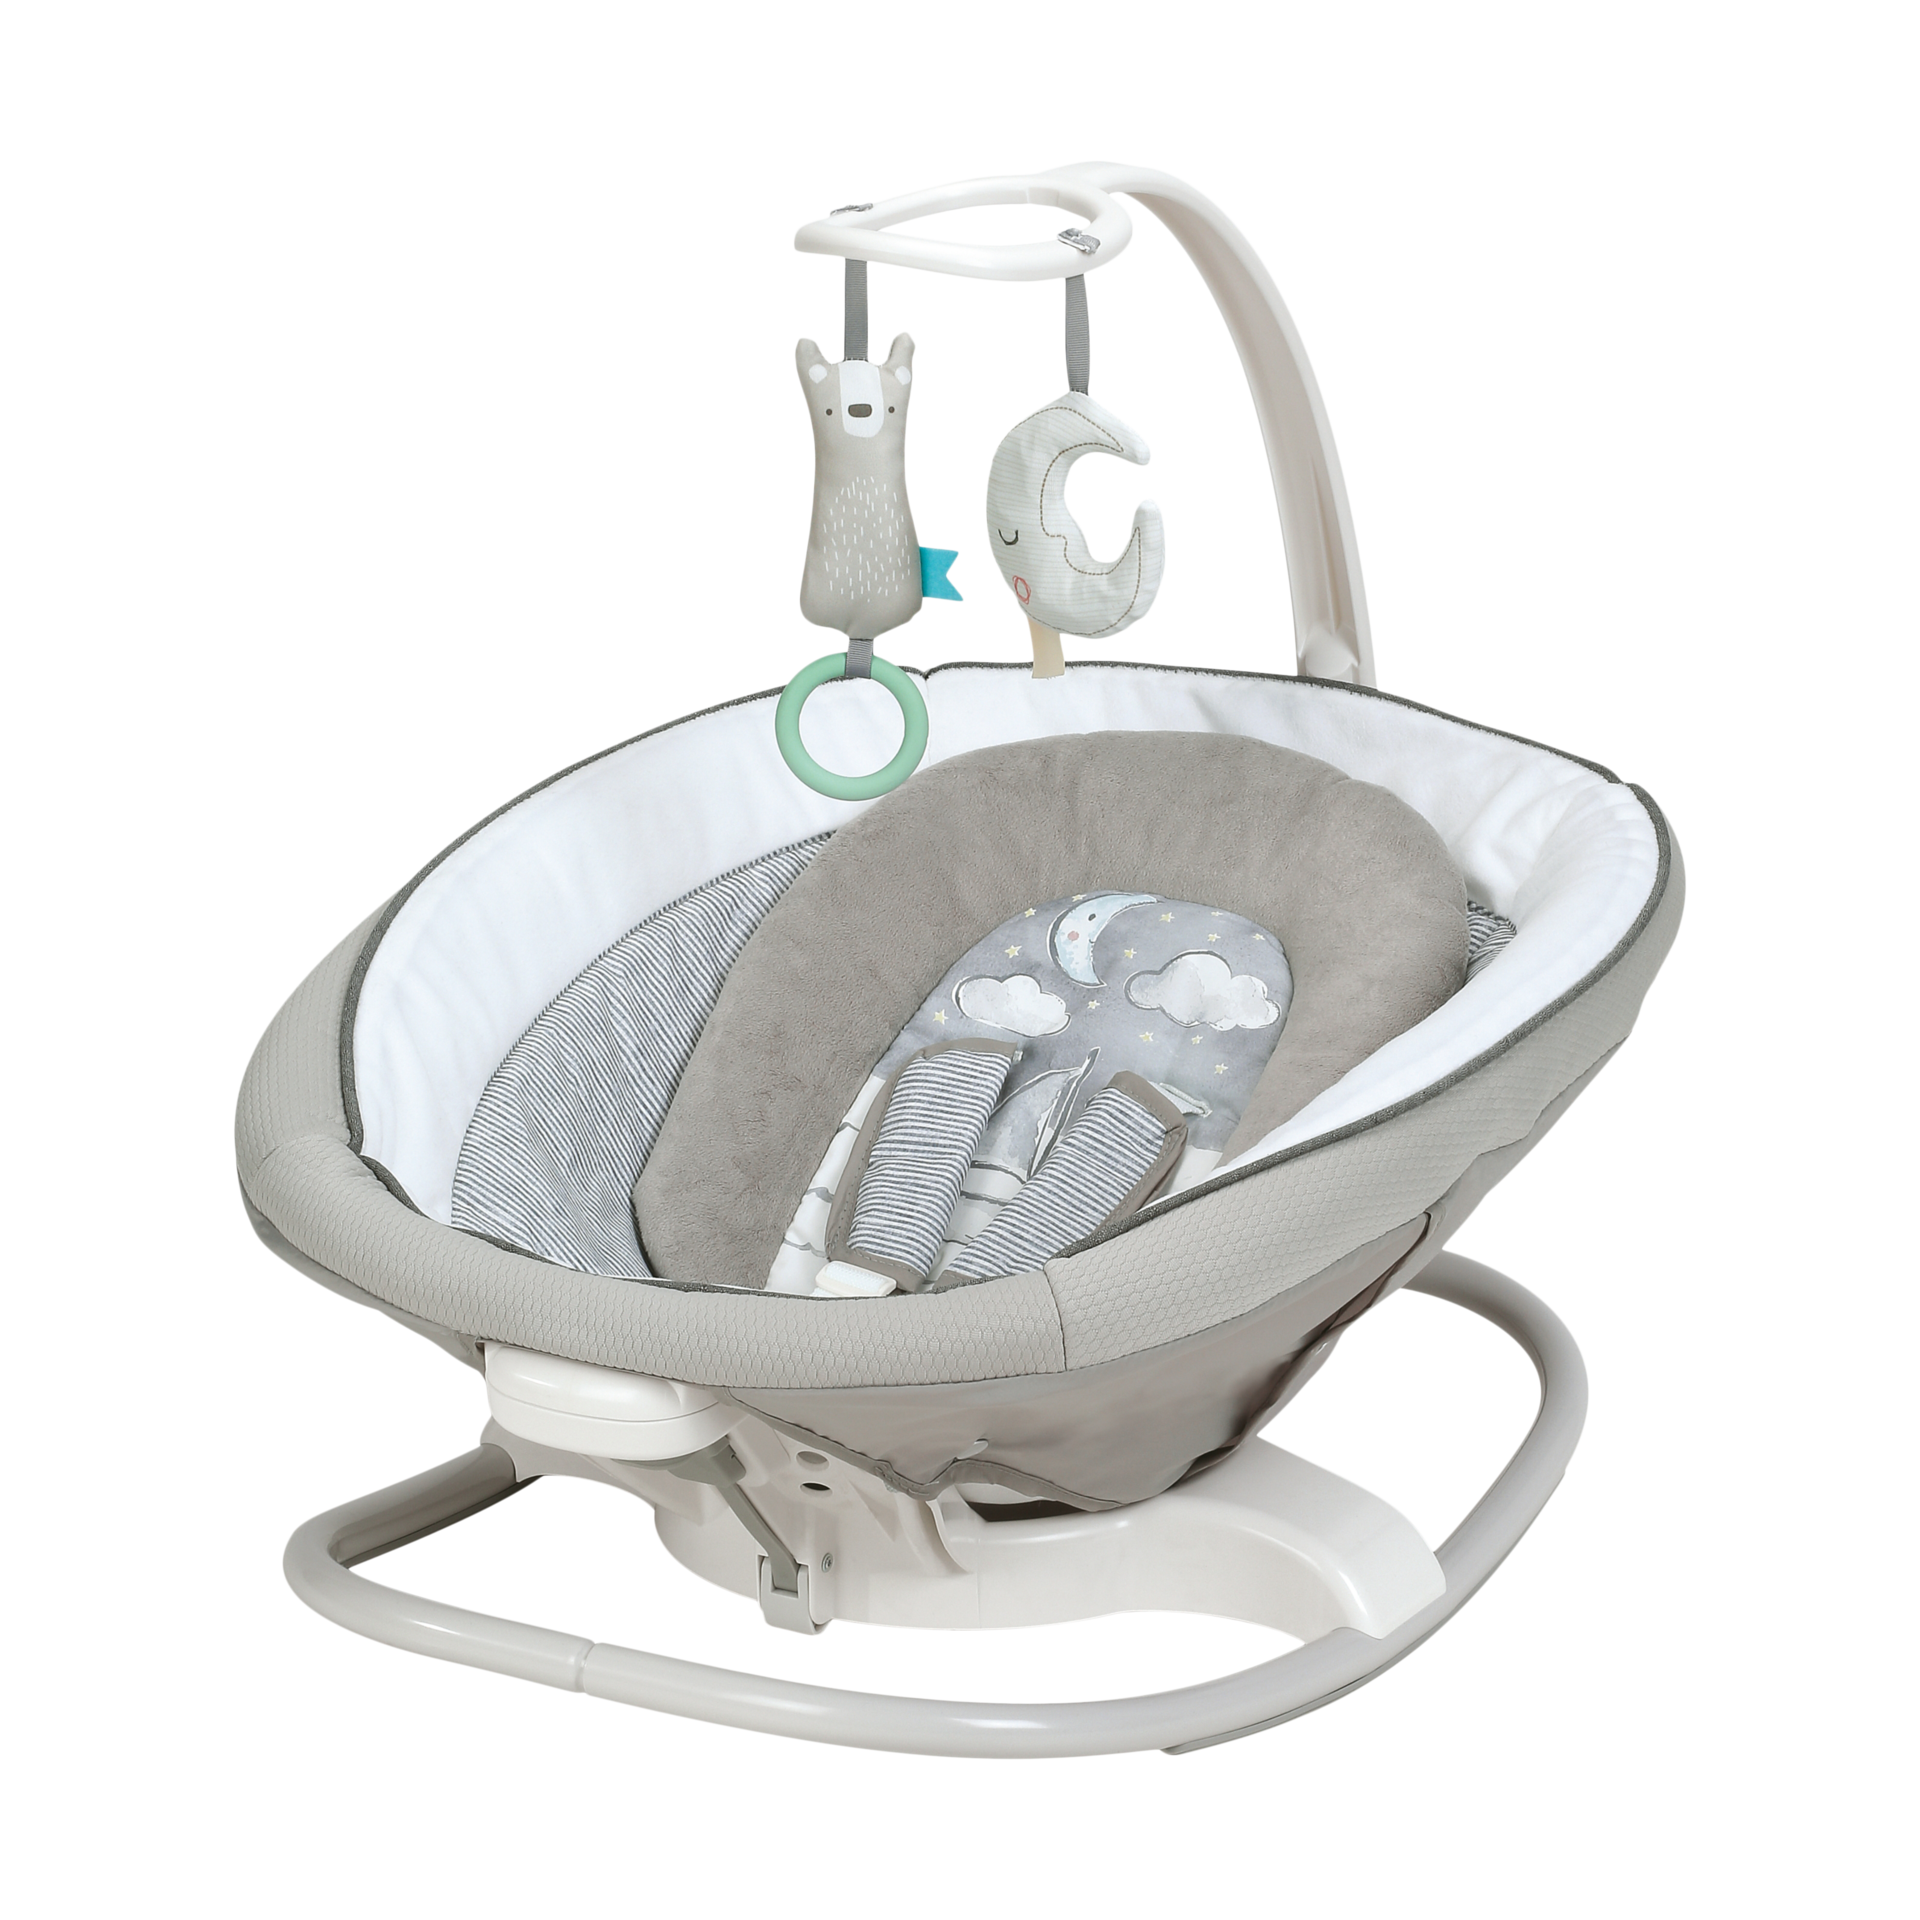 Baby Gear Graco Baby Sense2soothe Swing With Cry Detection Rocker Soother New 2019 Baby Baby Gear